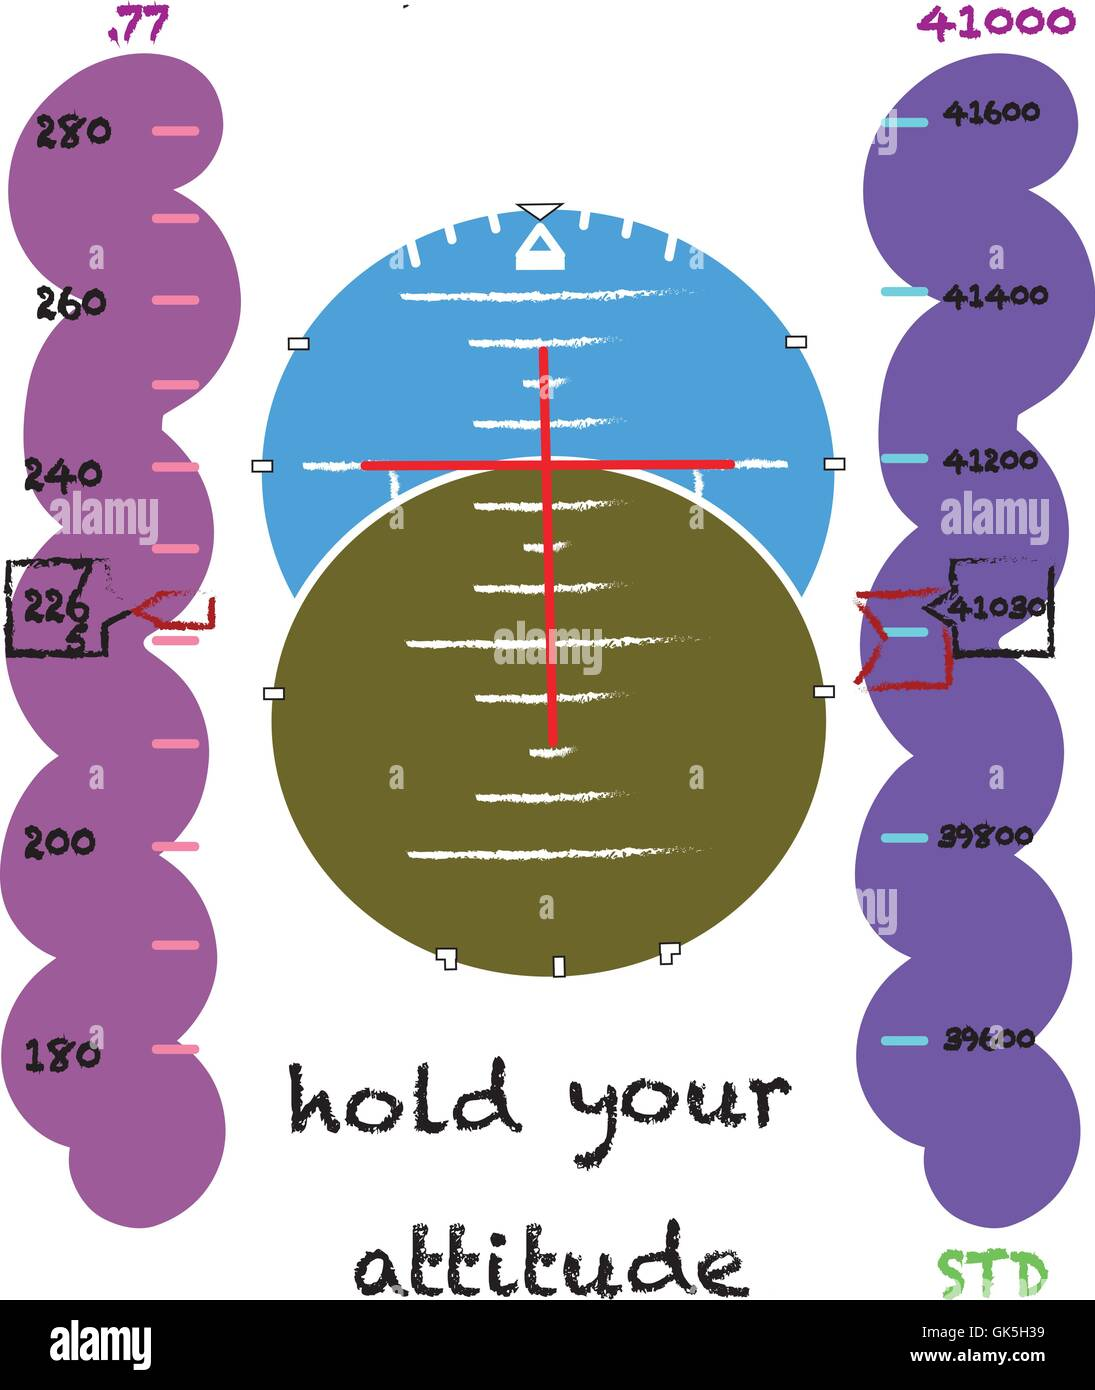 aircraft horizontal situation indicator design with text 'hold your attitude' for printing - Stock Image